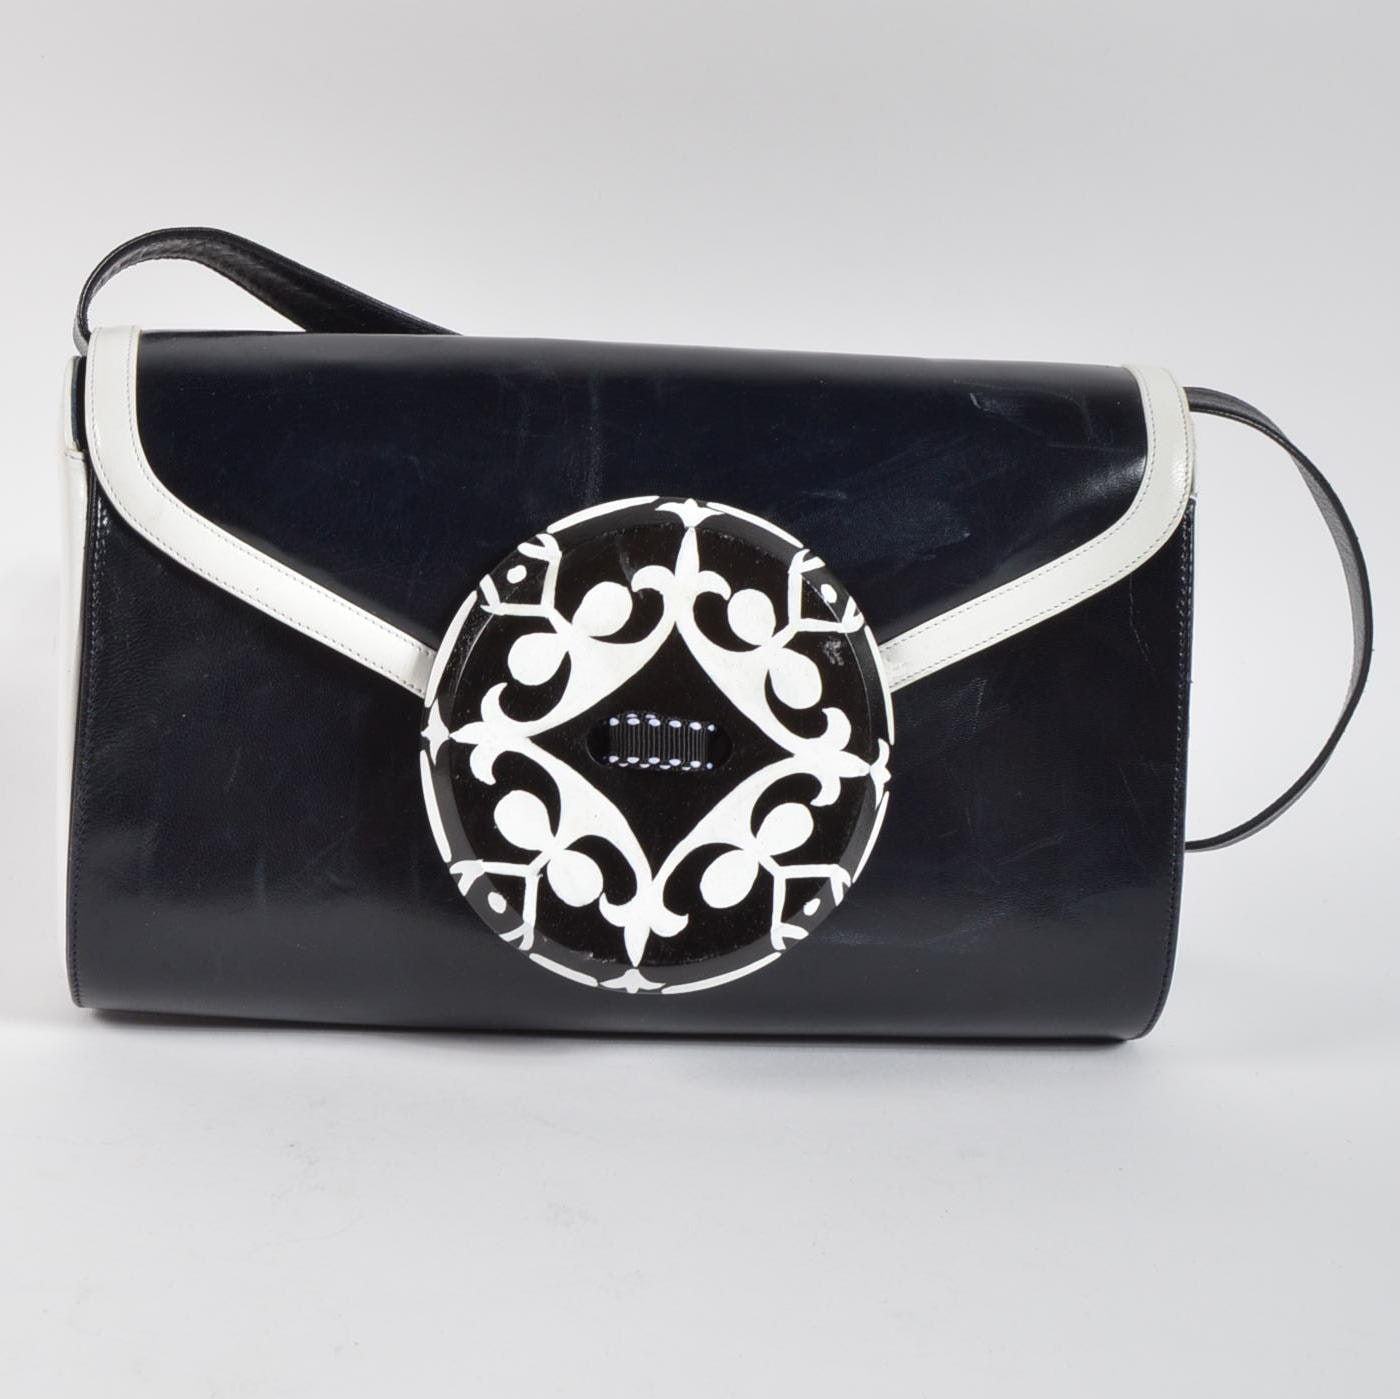 Bally Black and White Leather One-of-a-Kind Shoulder Bag